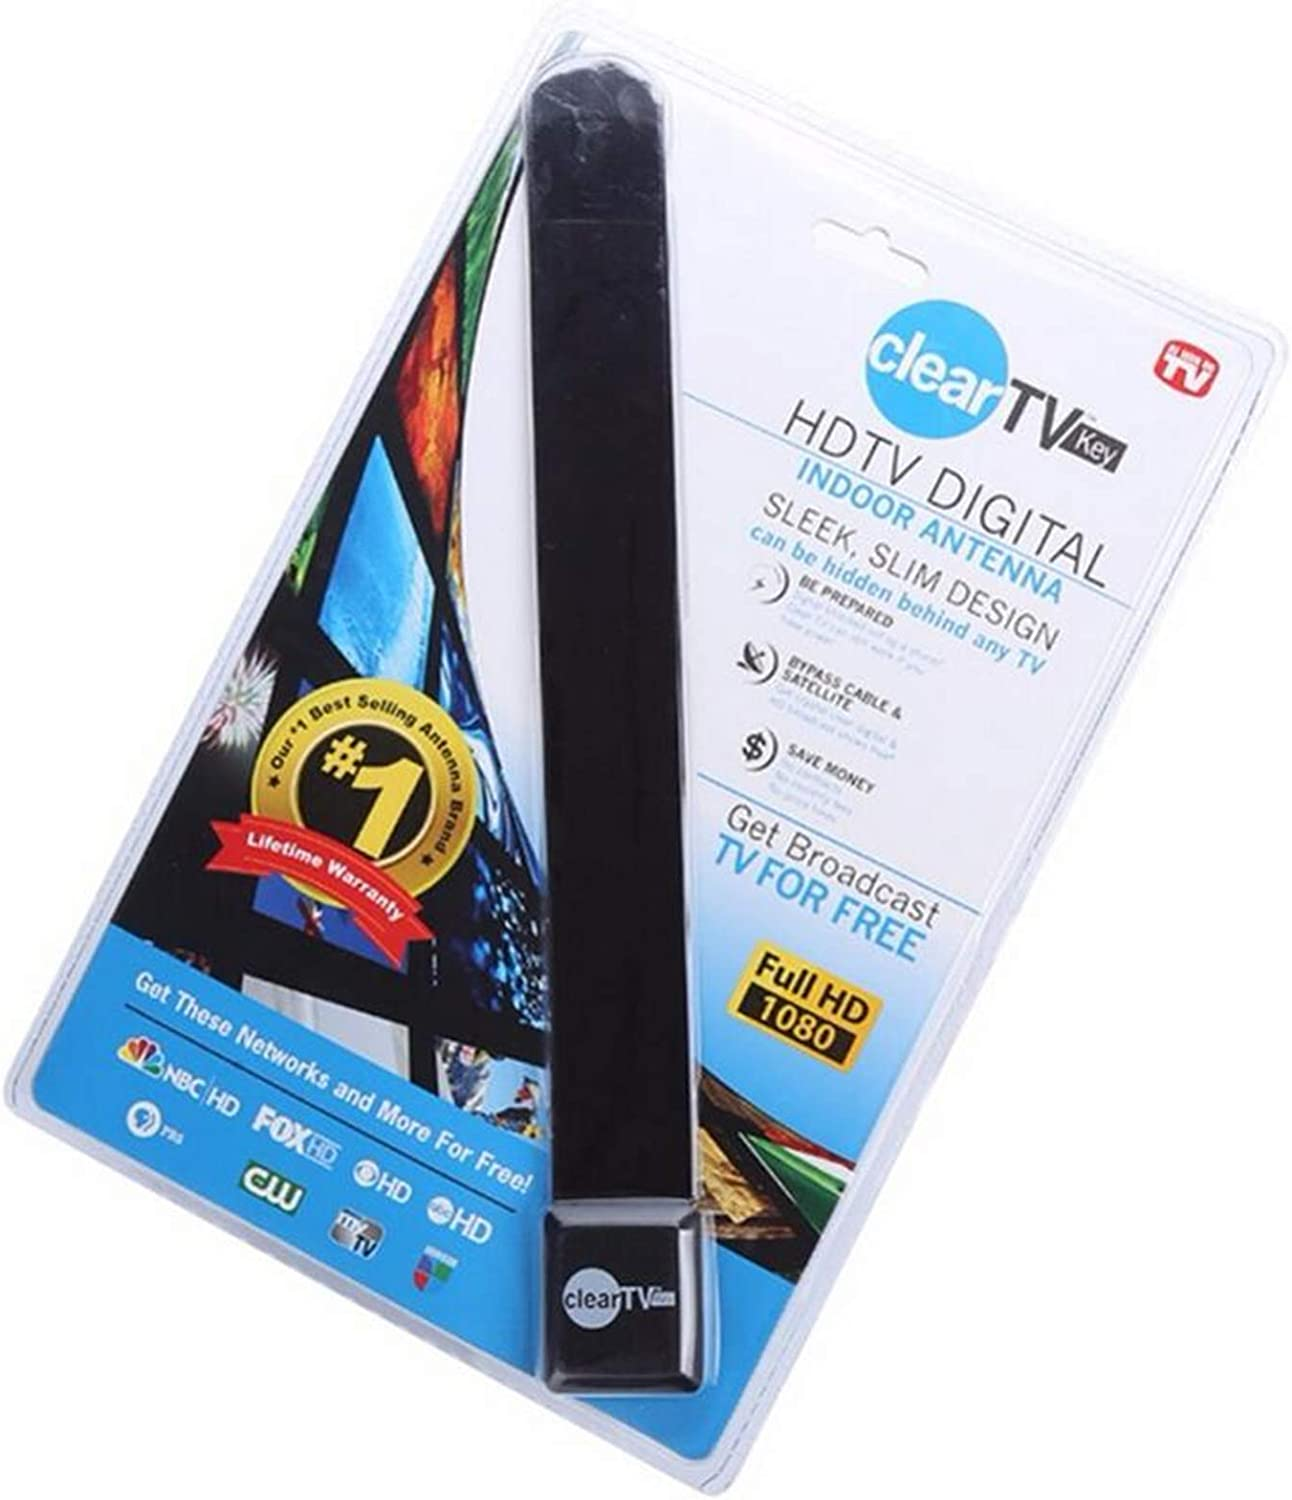 JMRoo Clear TV Key Digital Indoor Antenna As Seen on TV HD TV Free TV Digital Receive Satellite TV Indoor Antenna Ditch Cable As Seen on TV